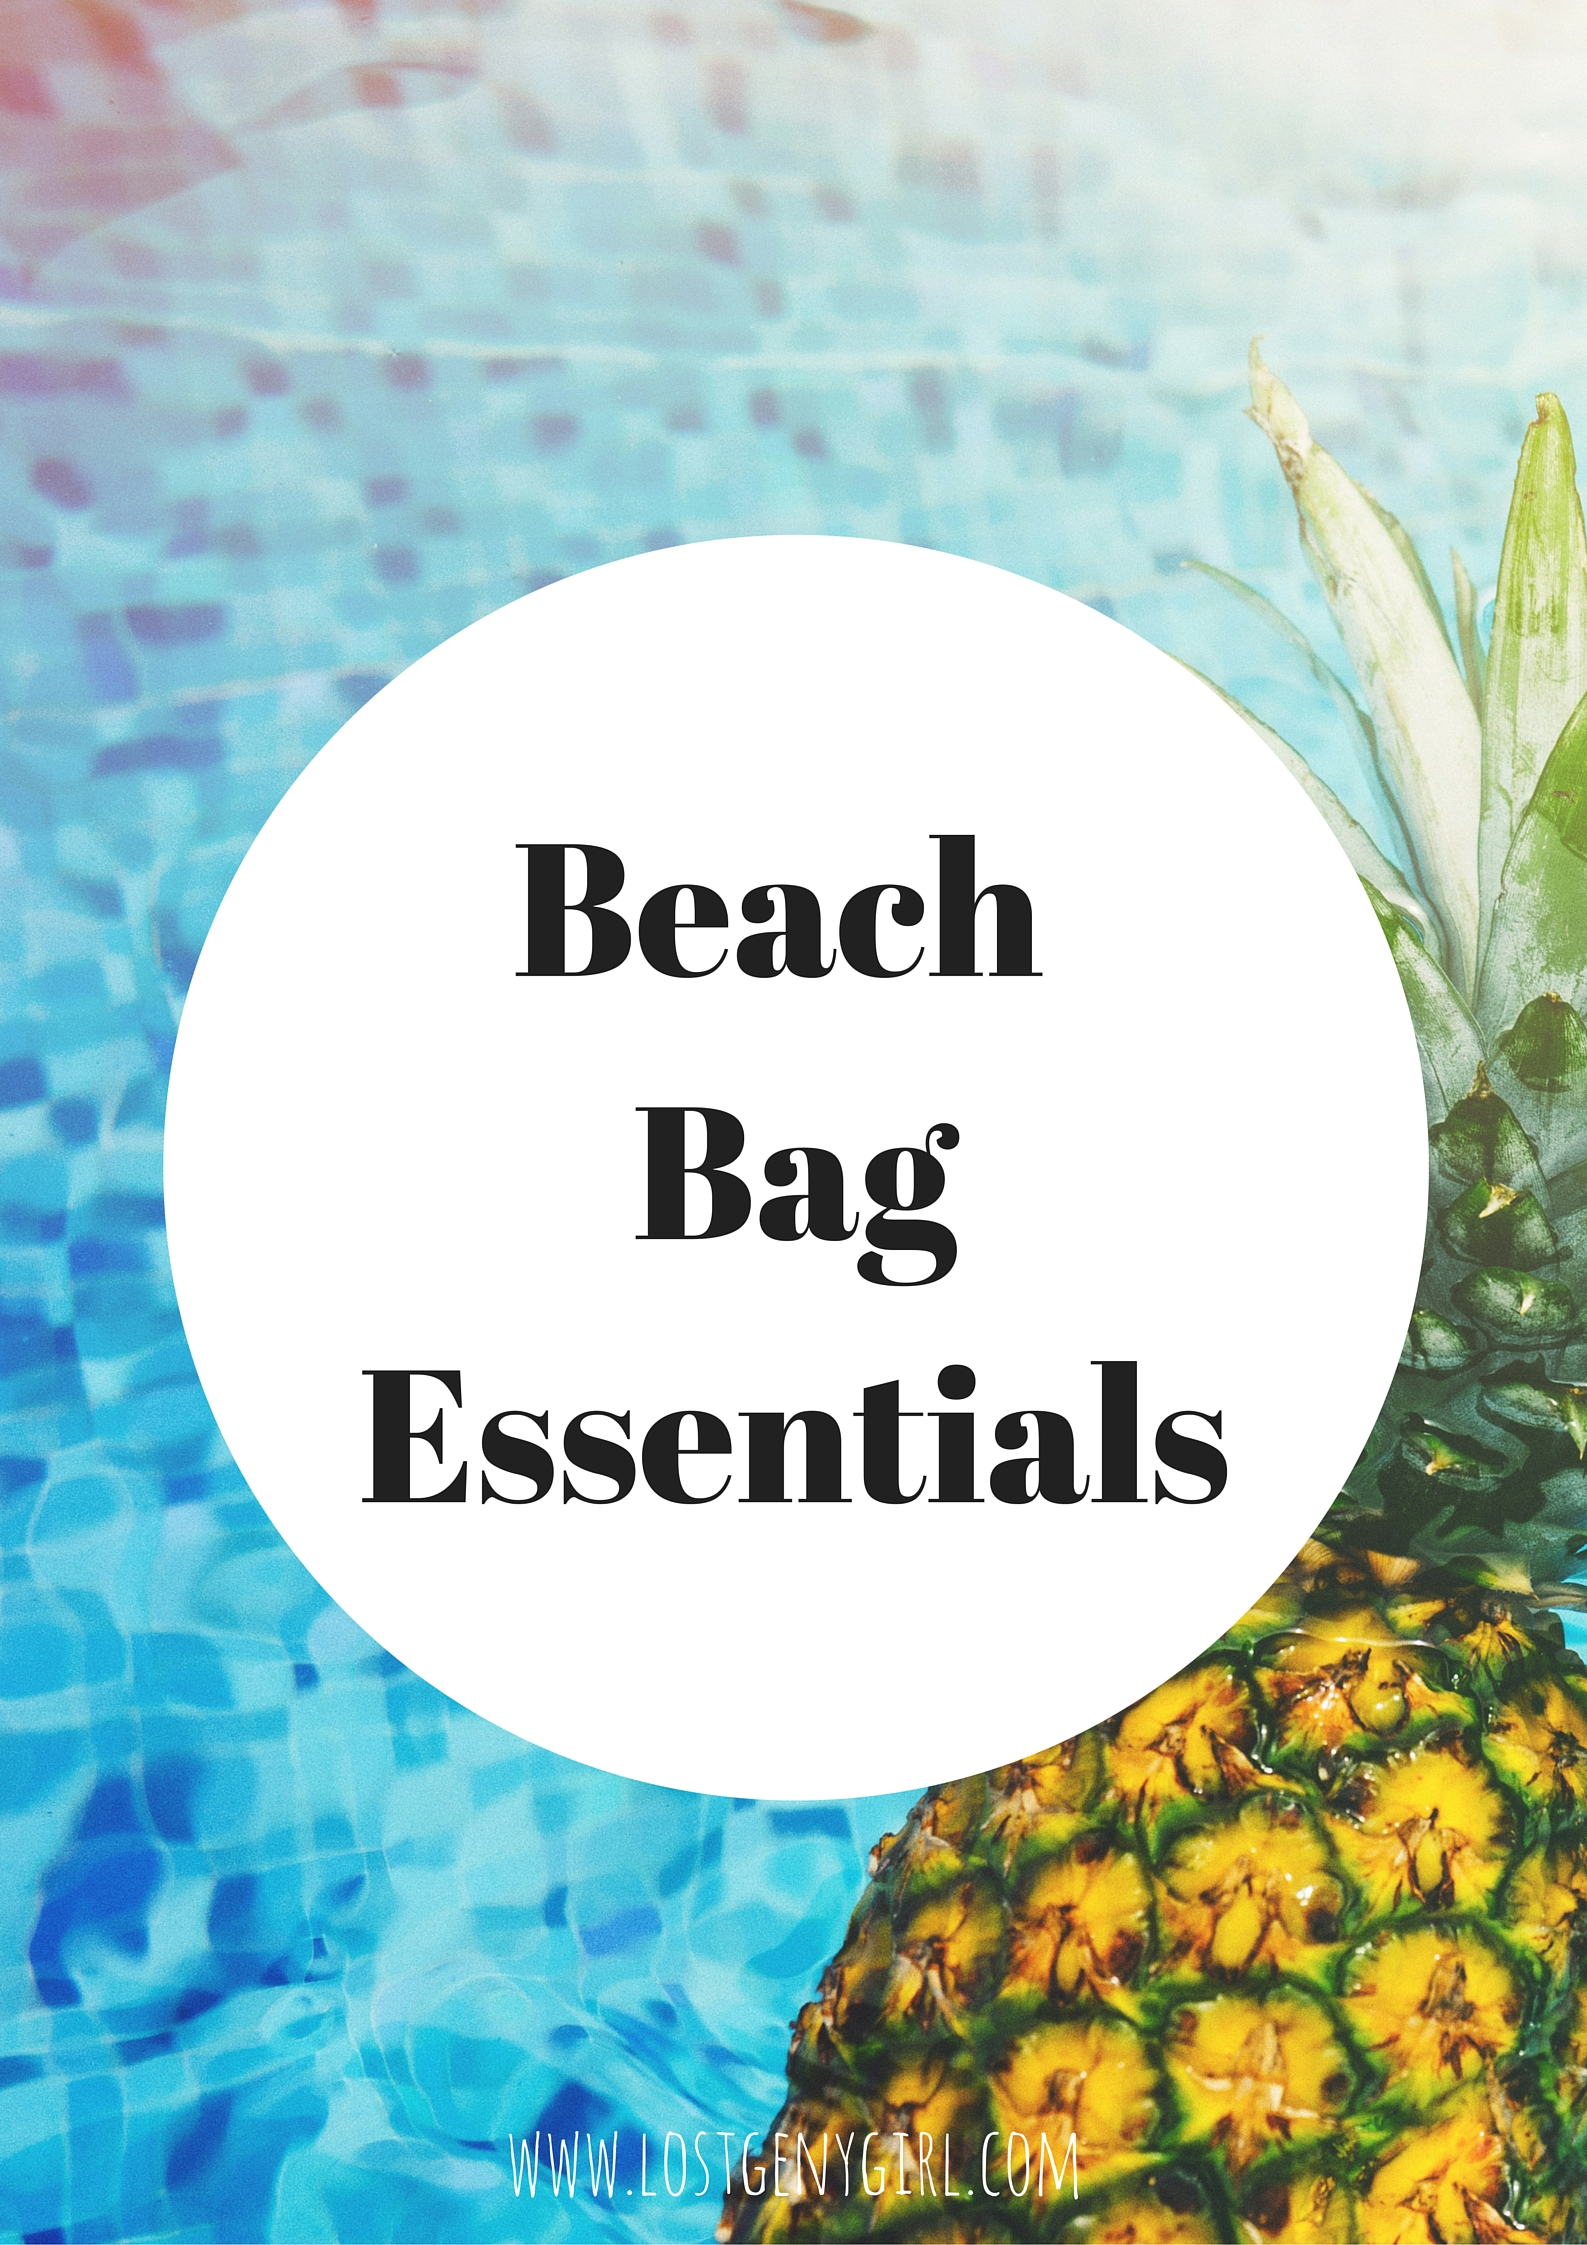 Beach Bag Essentials for Summer